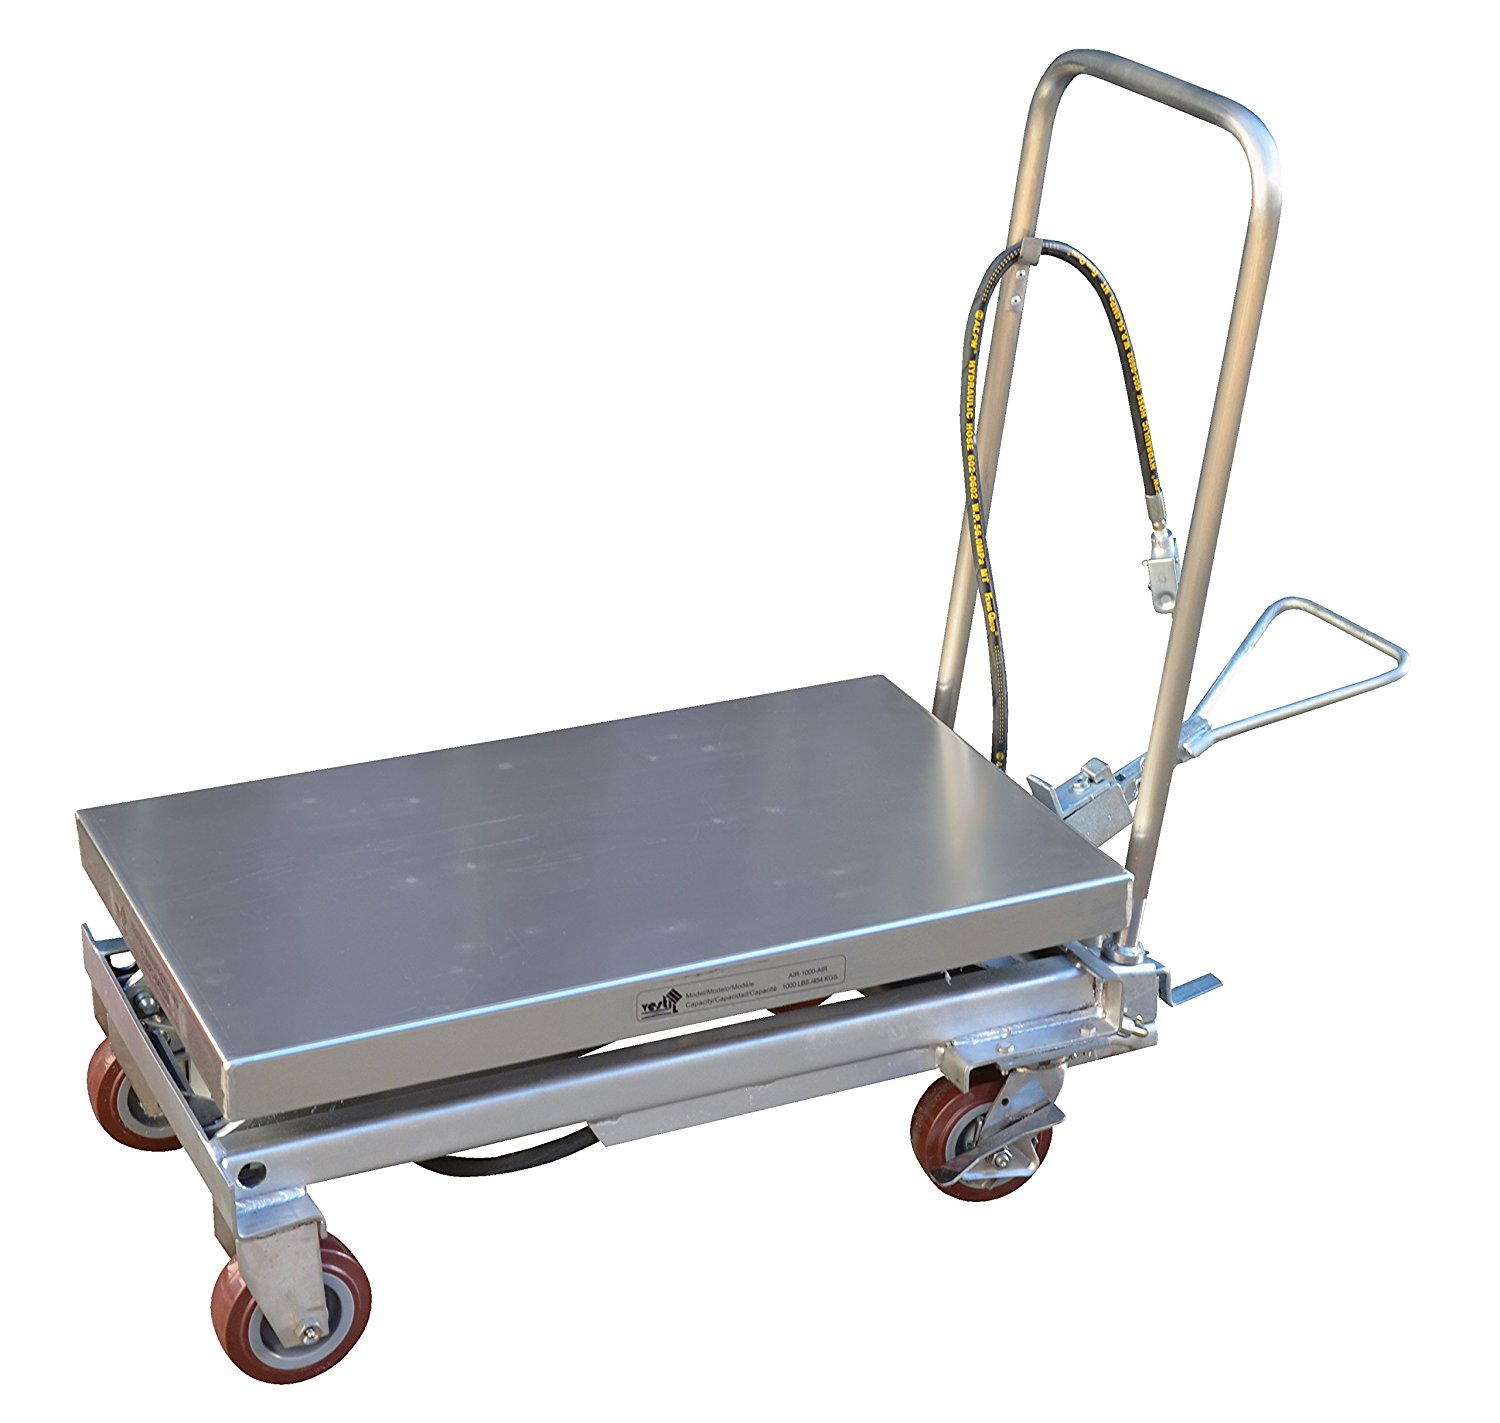 "Vestil AIR-1750-PSS Air Partial Ss' Cart 1750 lb. Capacity, 20"" Width x 39-1/2"" Length, Height Range 14-1/4""-39-1/2"", 80# Minimum Psi, 3/8""Incoming Airline"